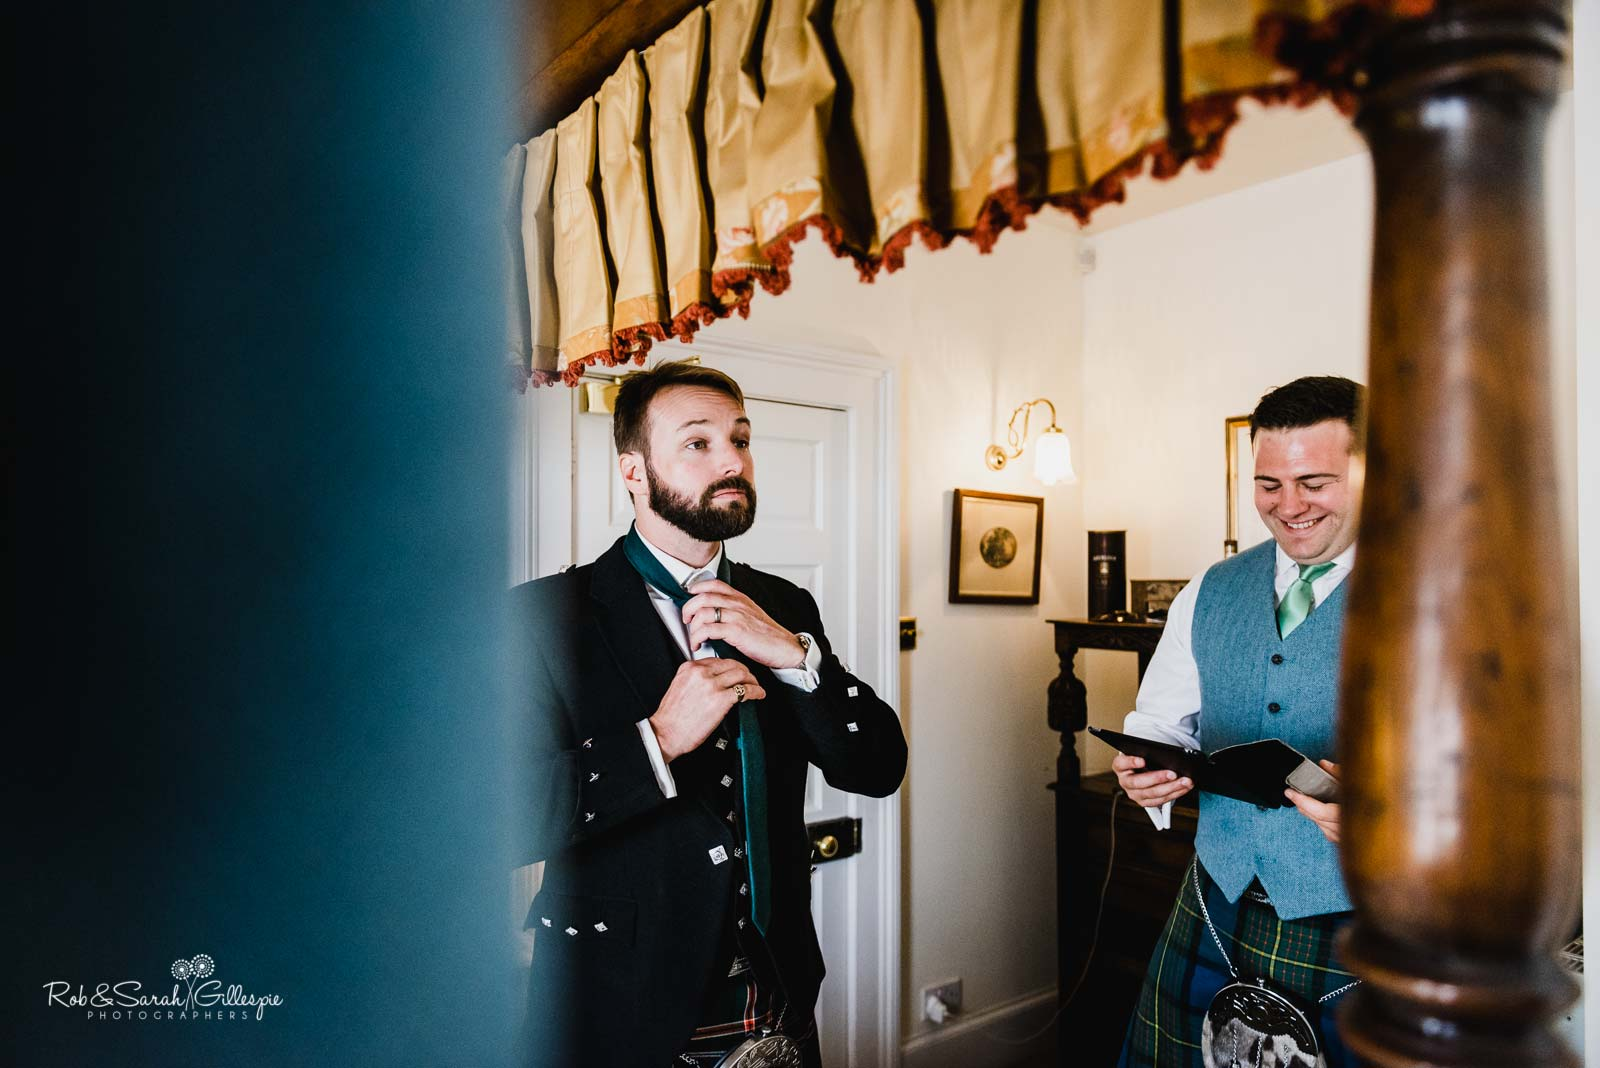 Groom preparations for wedding at Wethele Manor